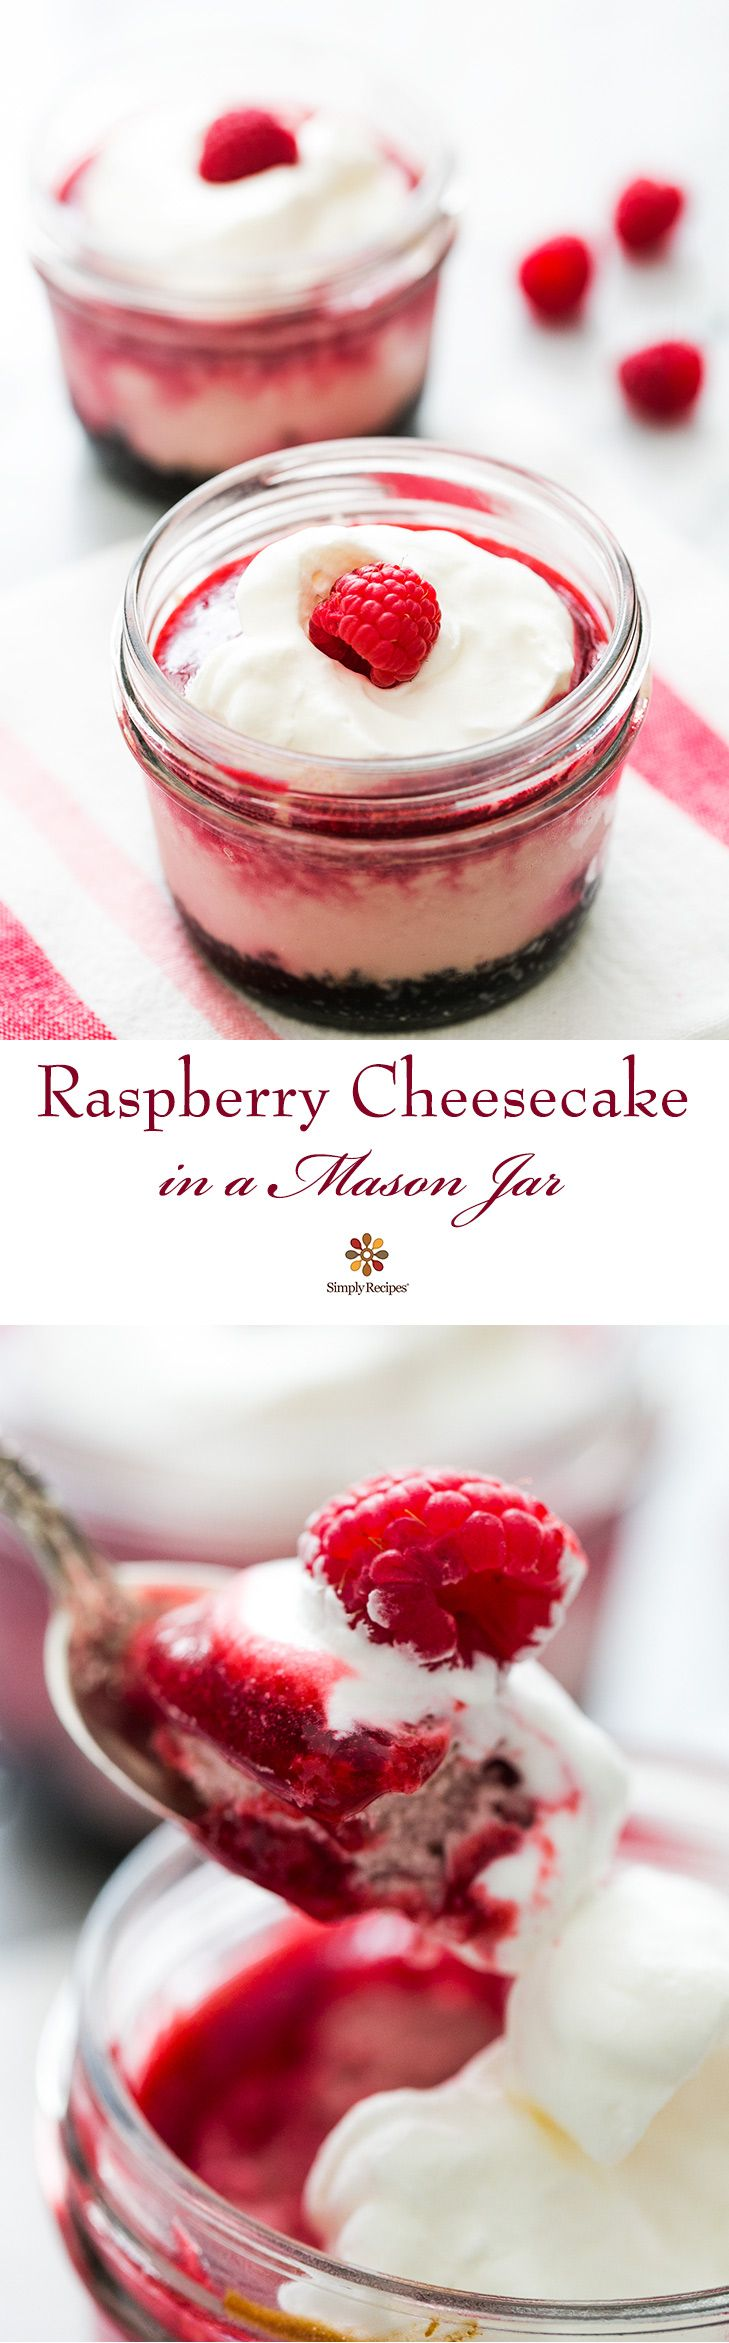 Individual raspberry cheesecakes in mason jars for easy cooking and eating! Oreo cookie crust with a raspberry cheesecake filling, topped with raspberry sauce and whipped cream. Perfect for Valentine's Day or Mother's Day! Get the recipe on SimplyRecipes.com